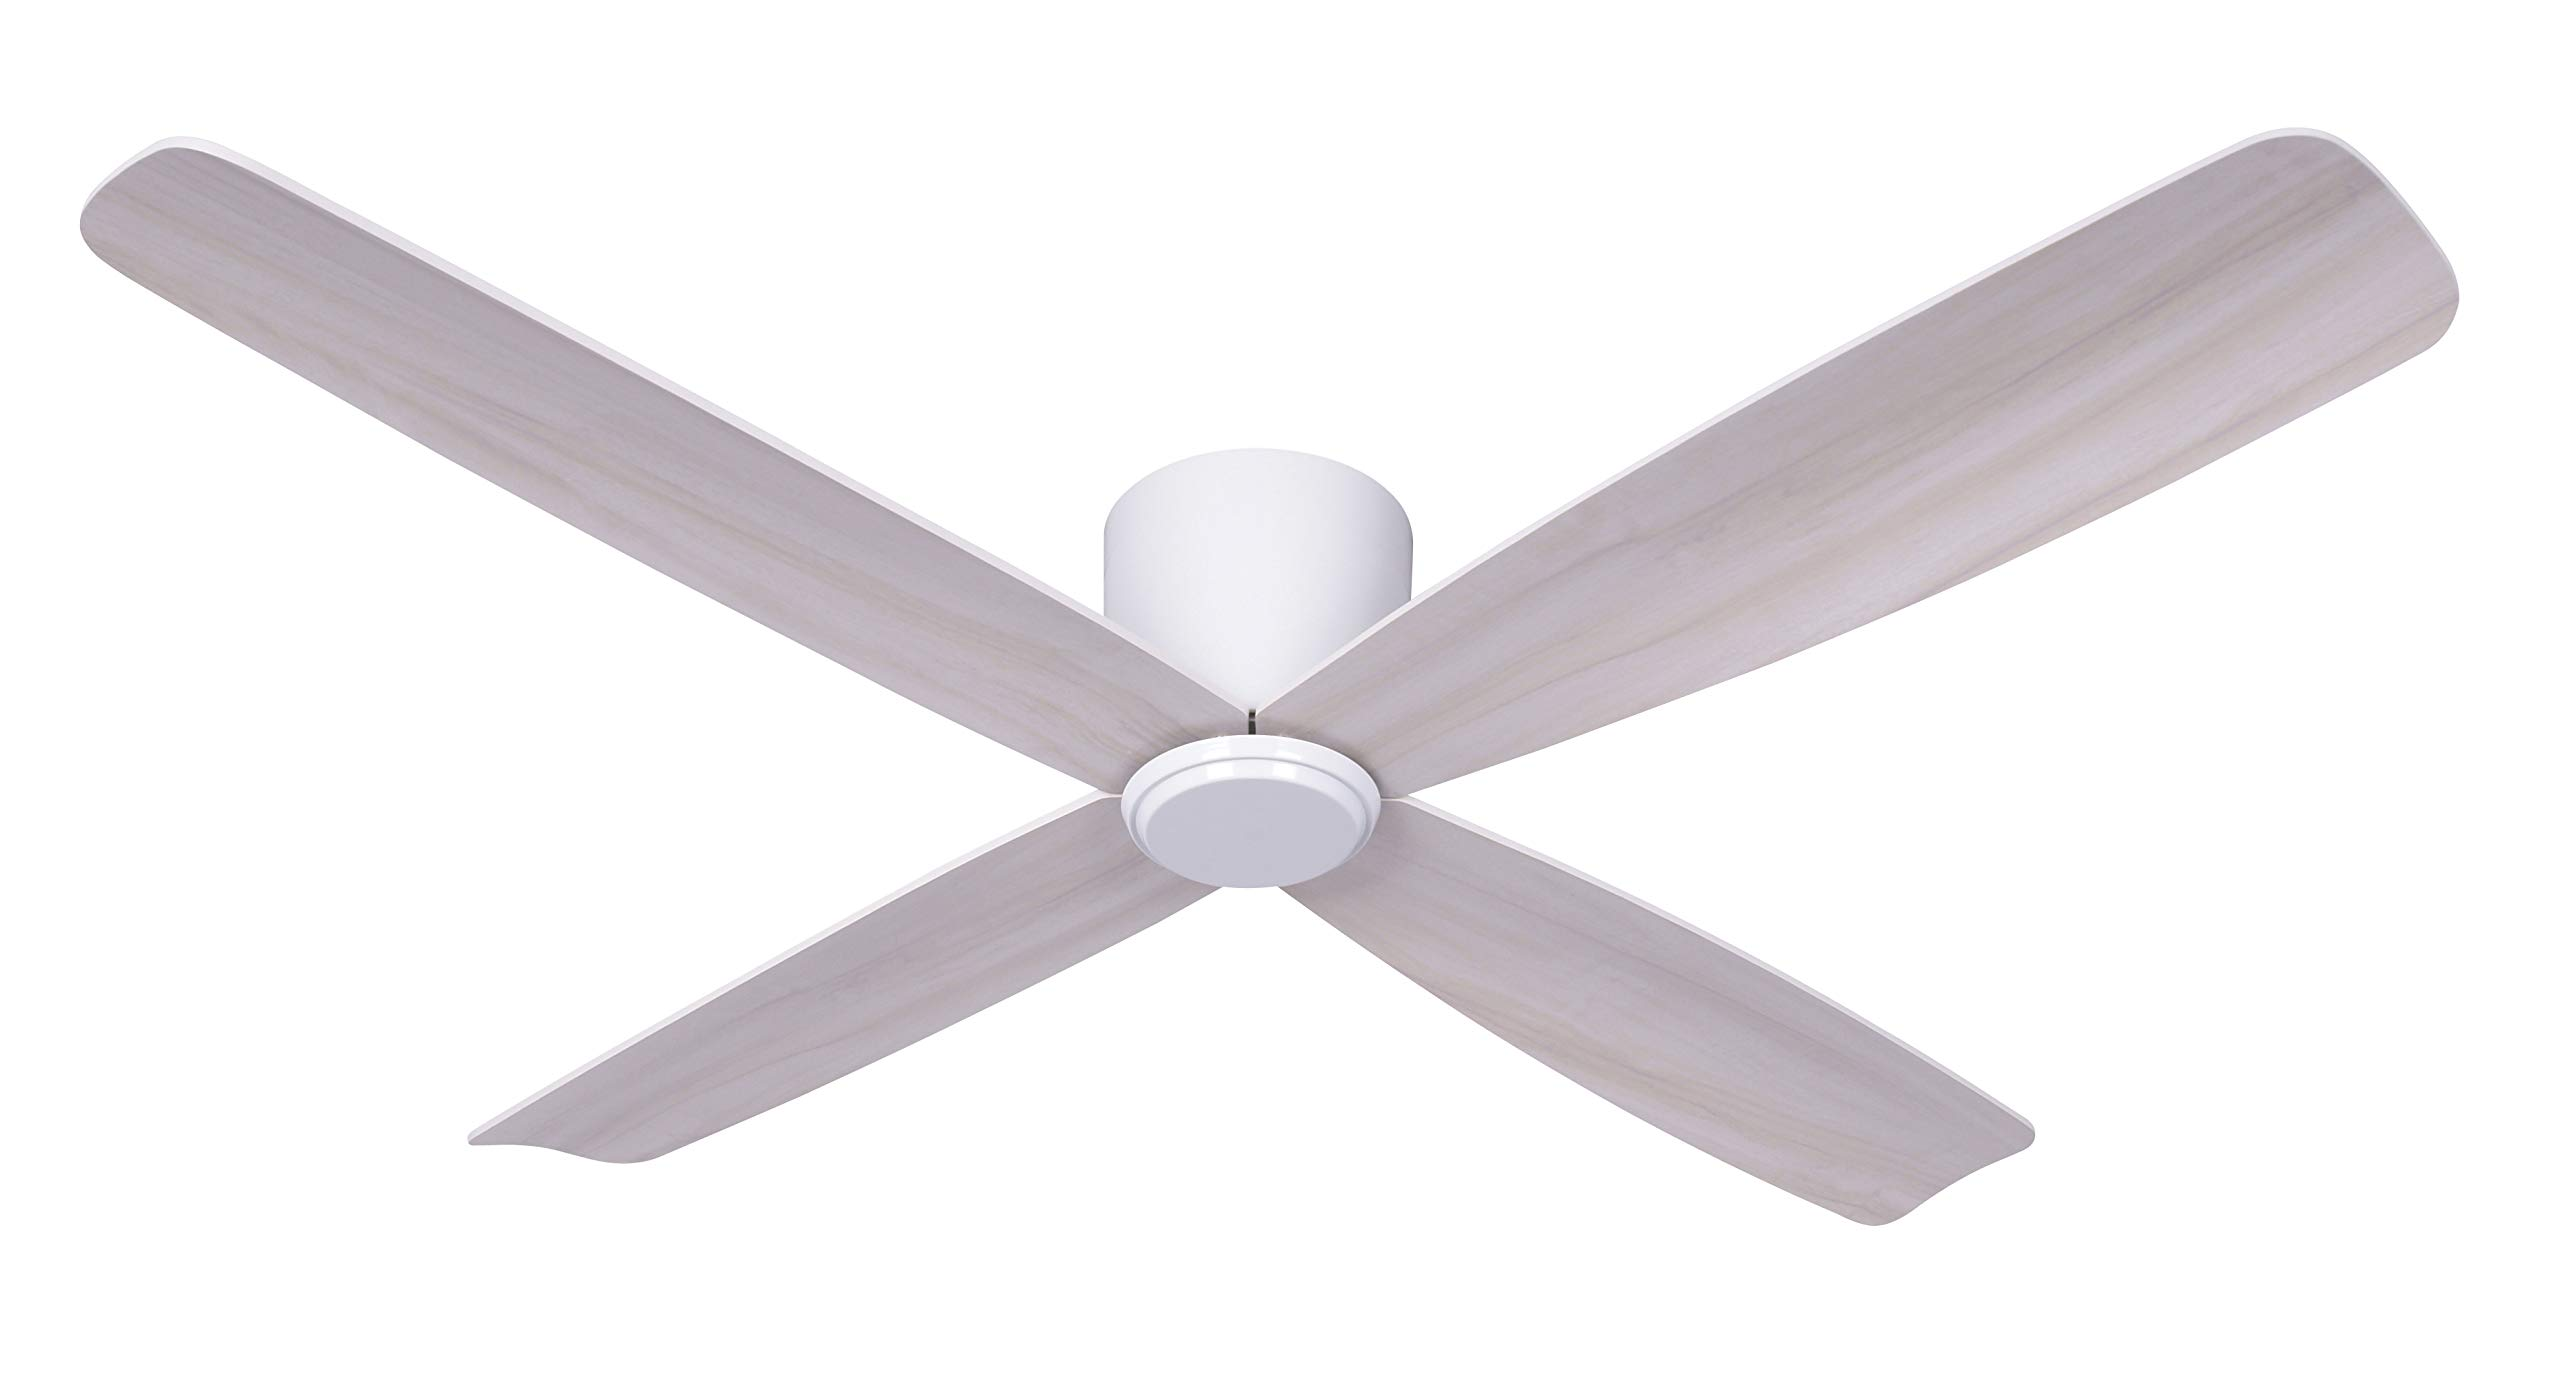 LUCCI AIR Fraser Ventilador de techo, 35 W, color blanco, 132 cm ...